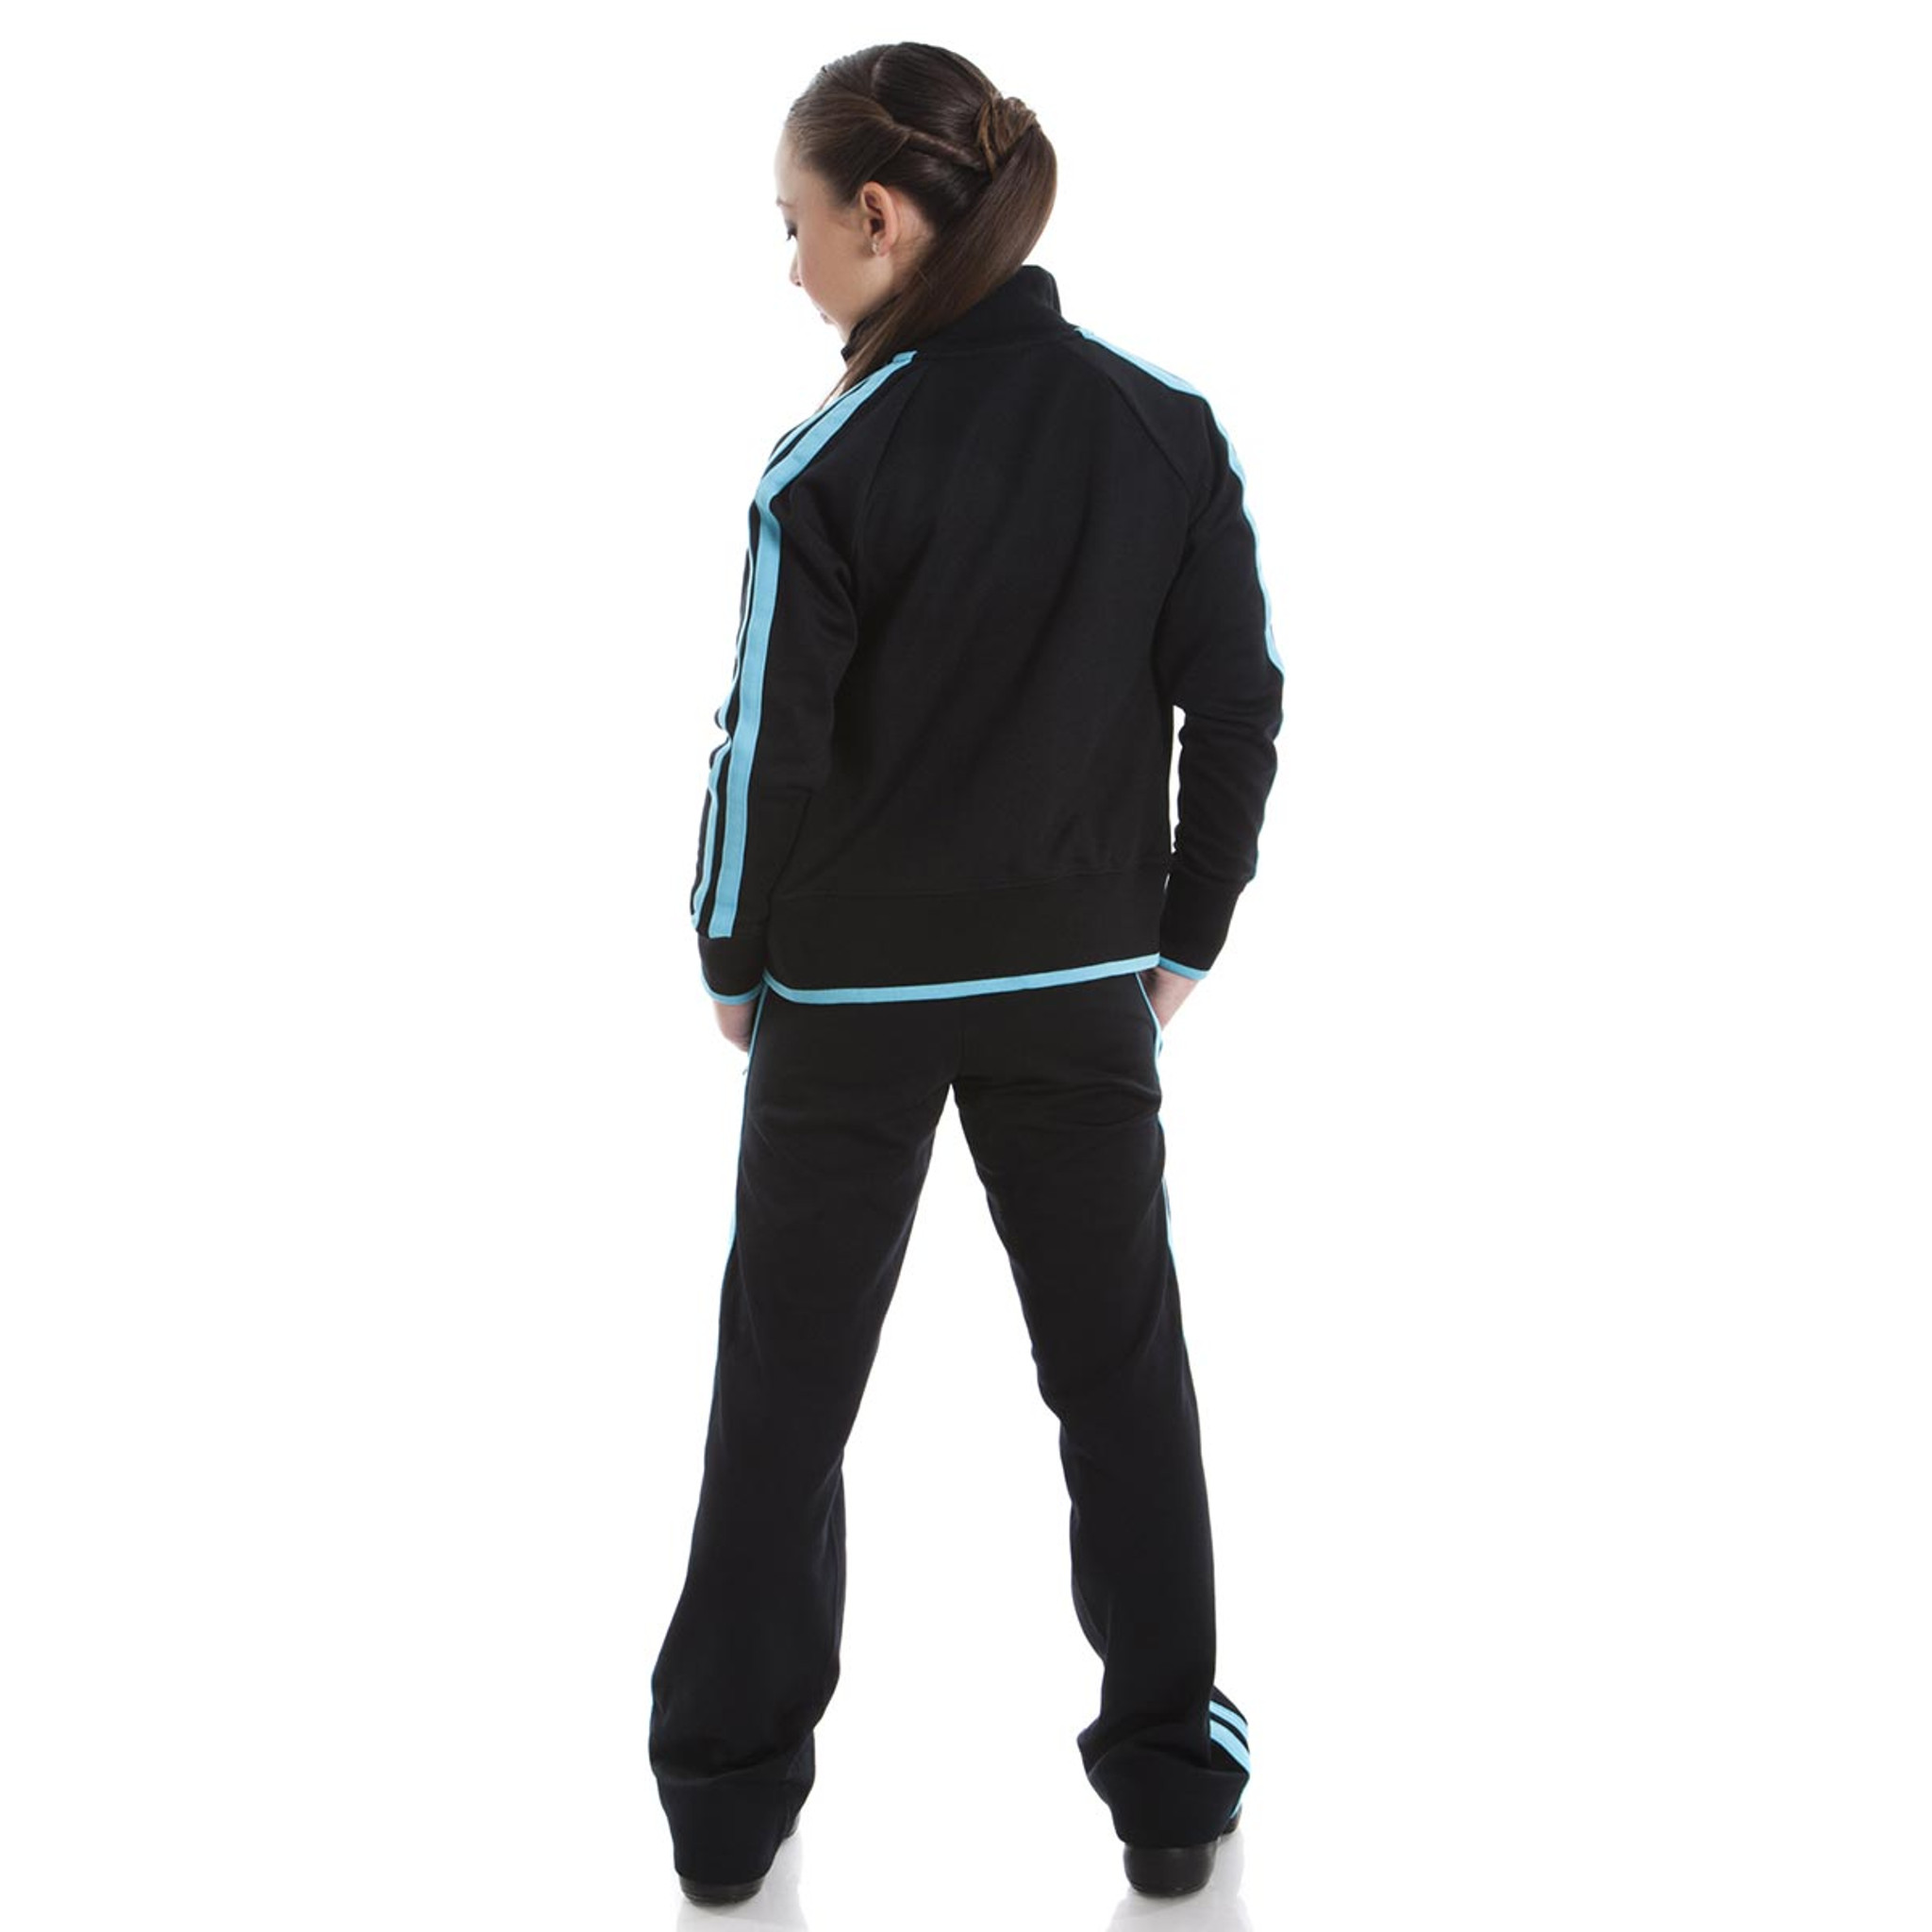 Energetiks Uniform Pants - Children's Unisex Dance Pants